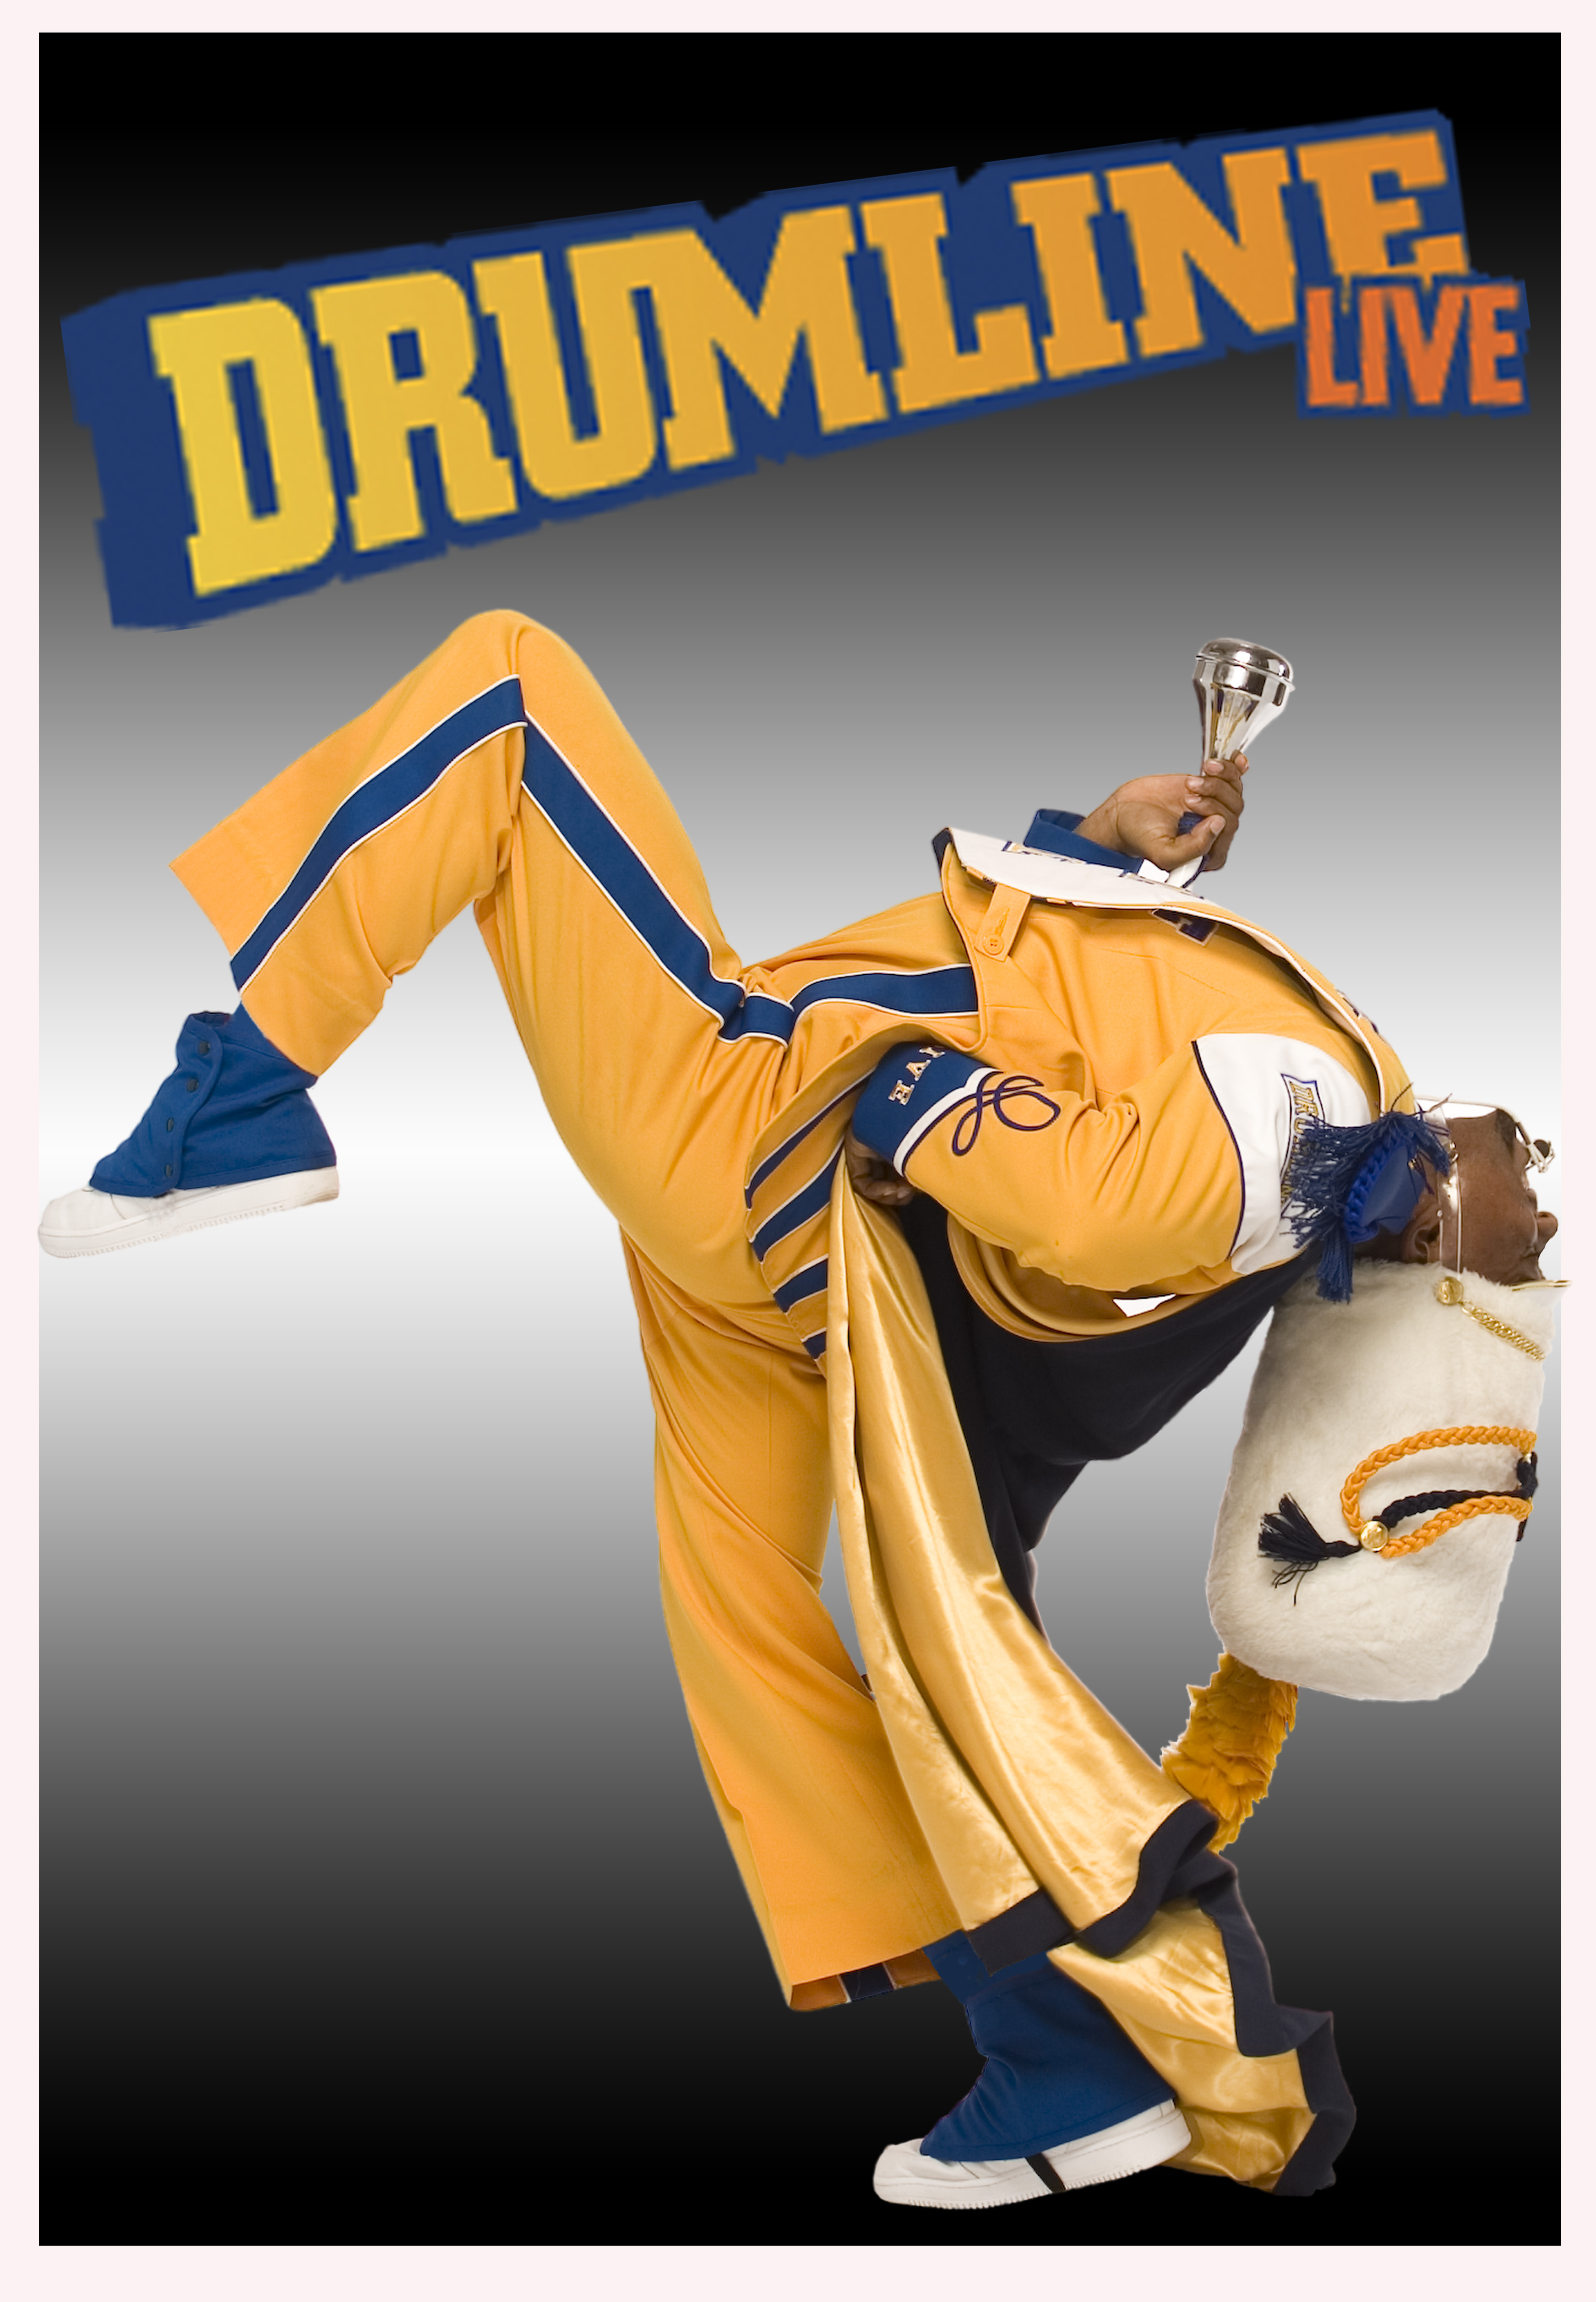 2011 Drumline Live Show